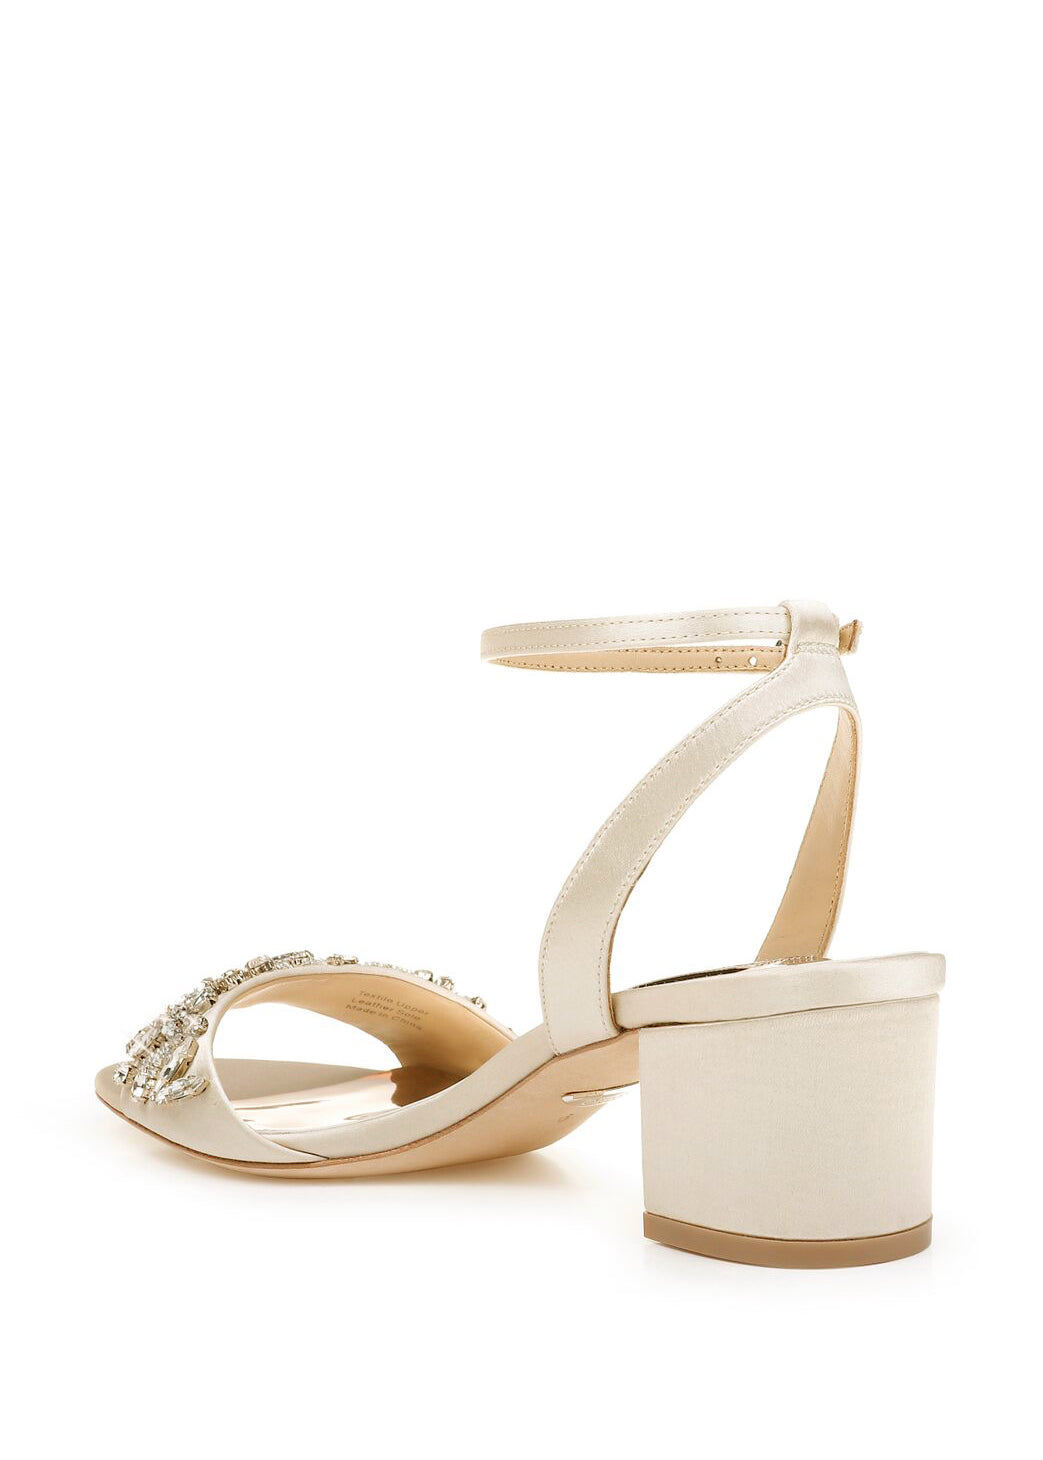 Ivanna - New, Shoes, Badgley Mischka - Eternal Bridal